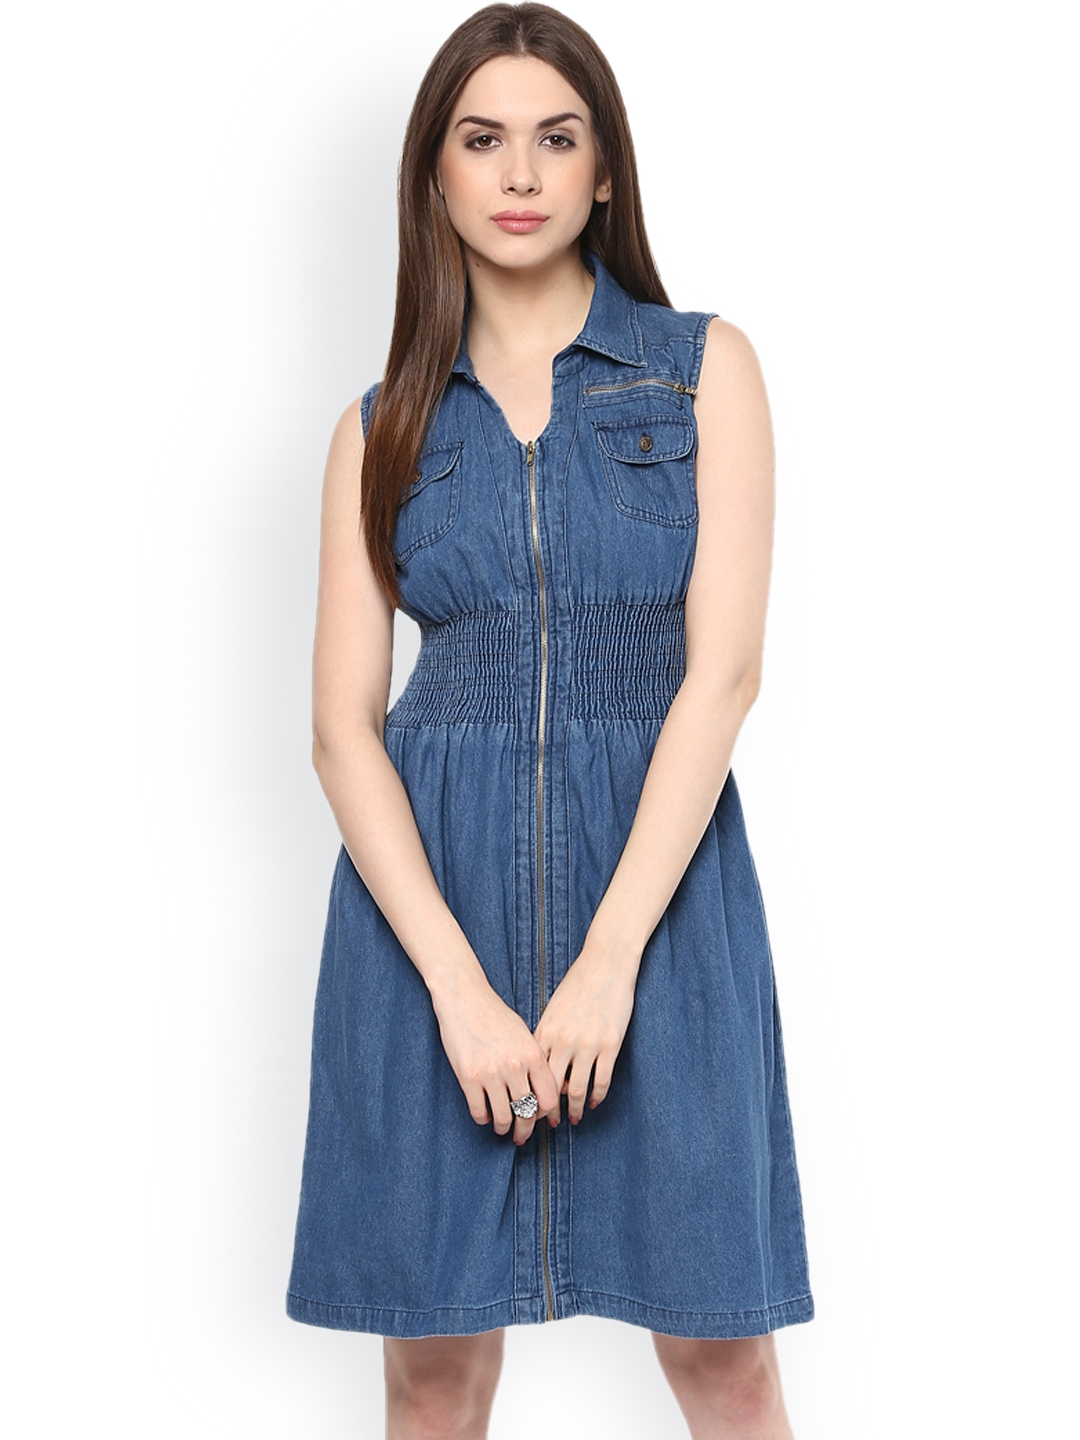 783dae3b86f81 Buy Style Stone Blue Denim Fit   Flare Dress - Dresses for Women ...